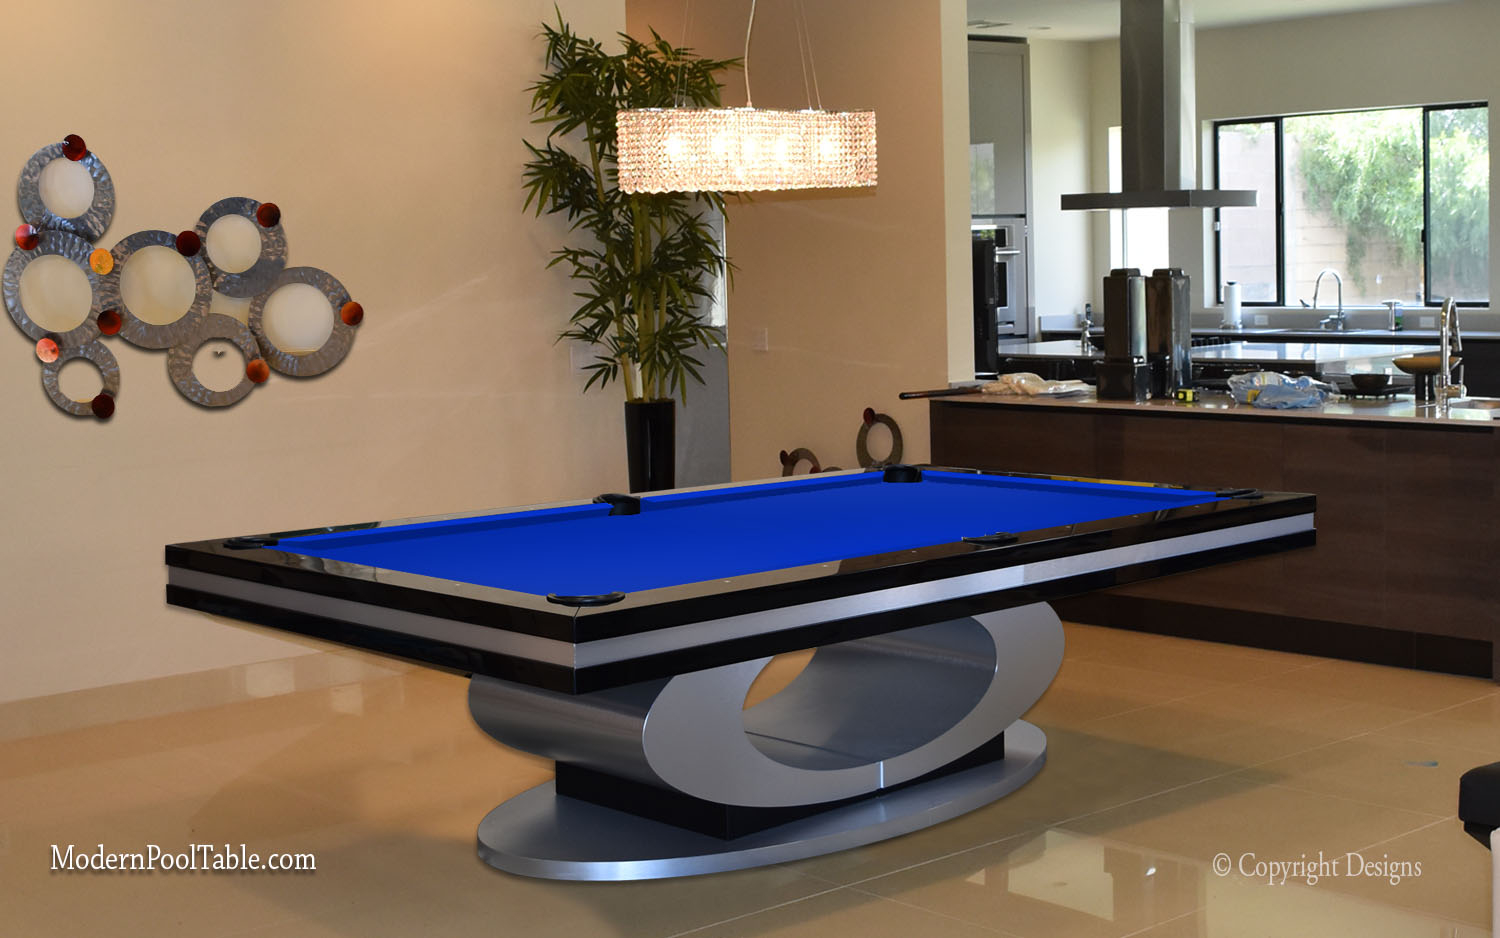 Modern Pool Table Contemporary Pool Tables Custom Pool Tables - Modern pool table designs